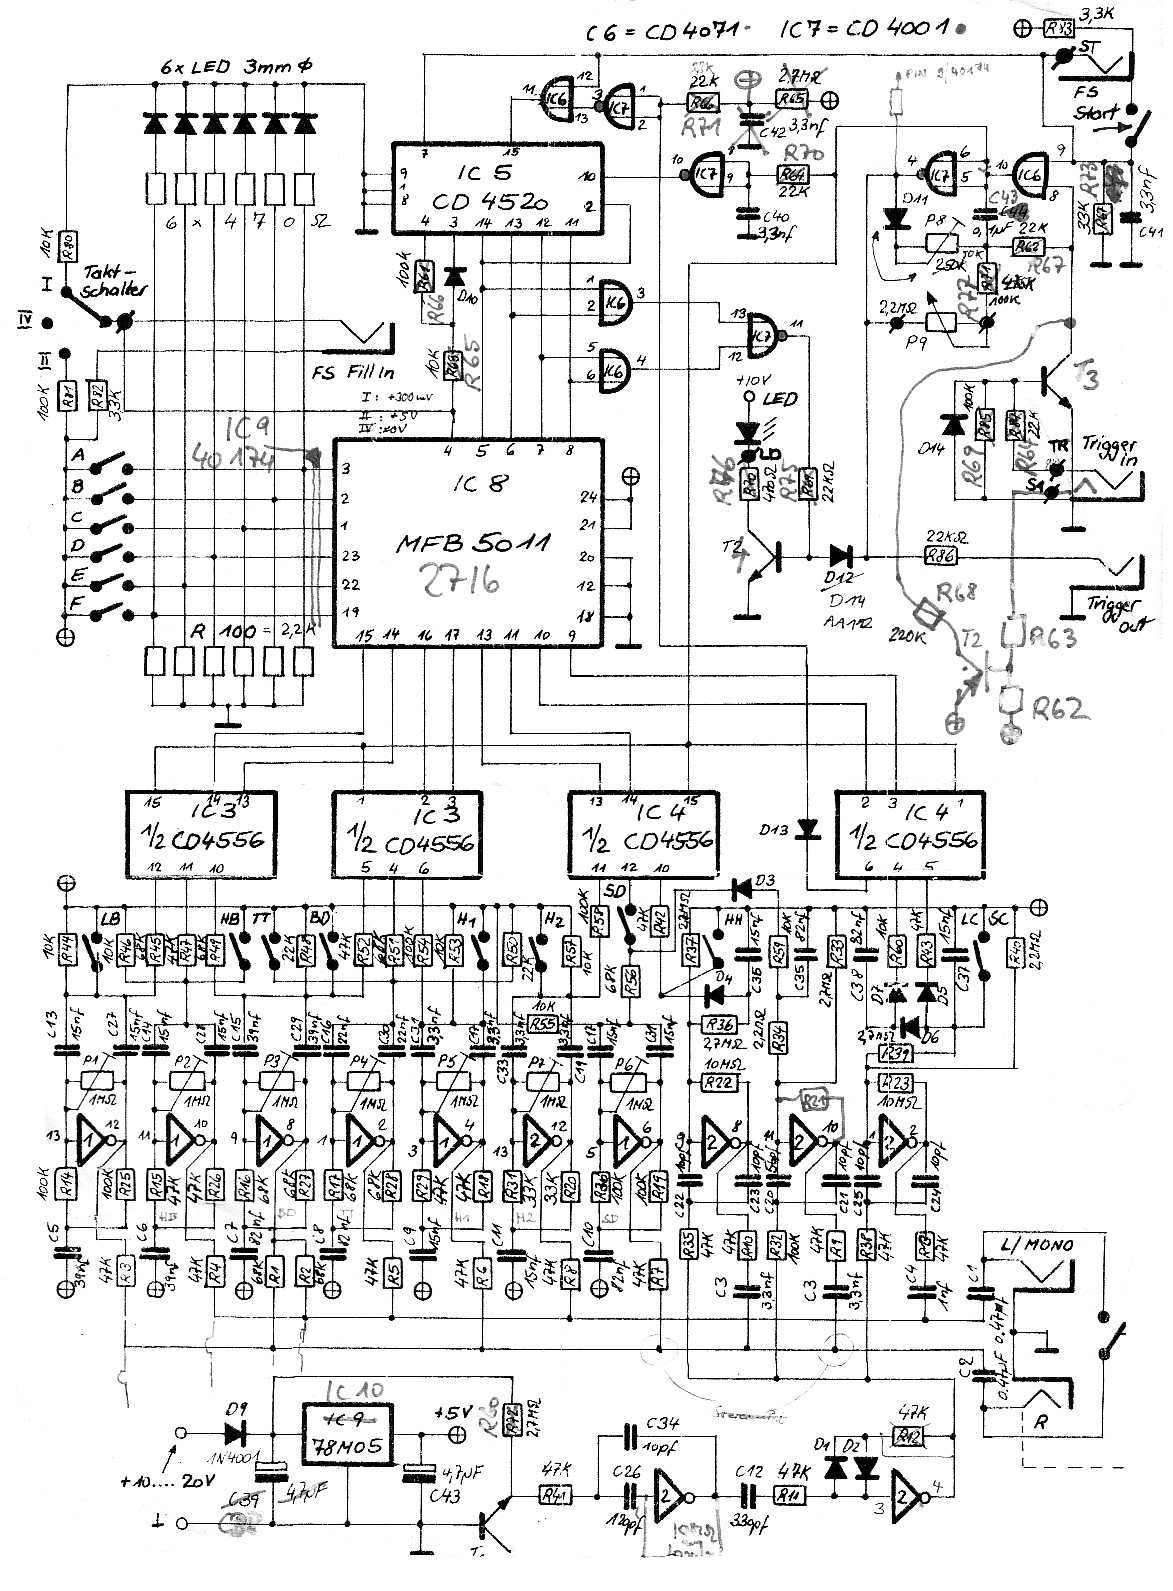 SYNTHESIZER SERVICE MANUALS - FREE DOWNLOAD